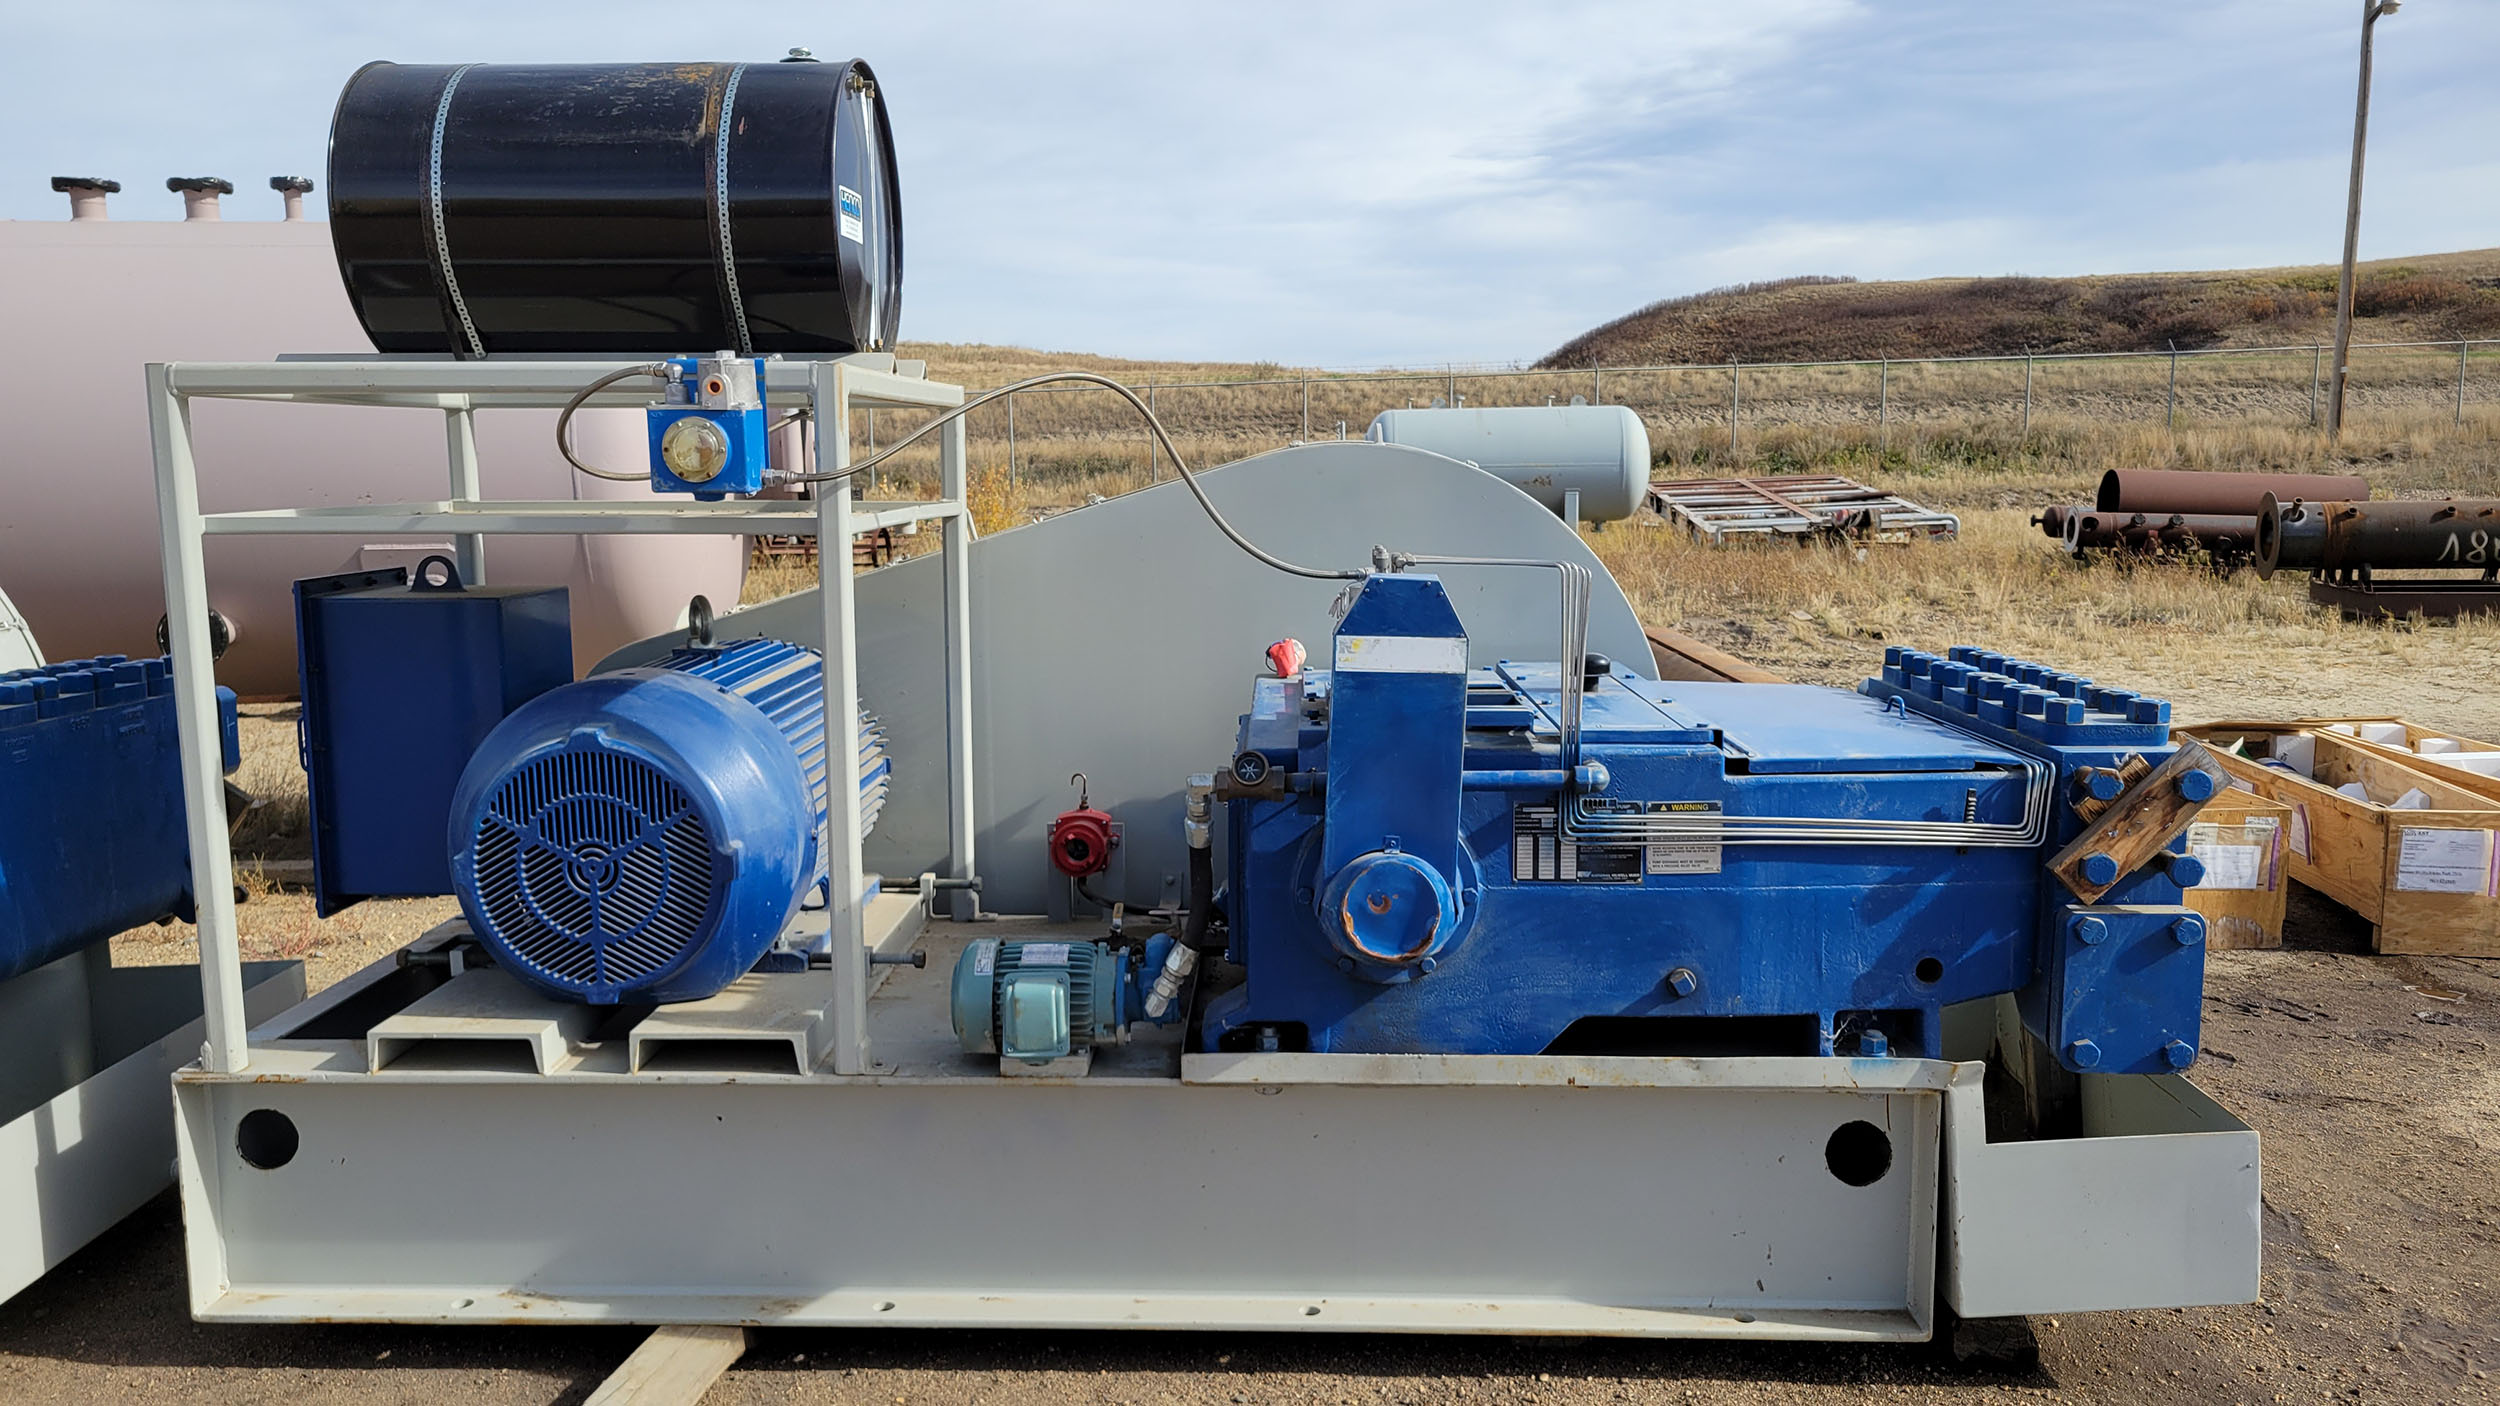 New / Never-used 300HP National 300Q-5M Unitized / Mini Skid Pumps for sale in Alberta Canada surplus oilfield oil and gas equipment 1